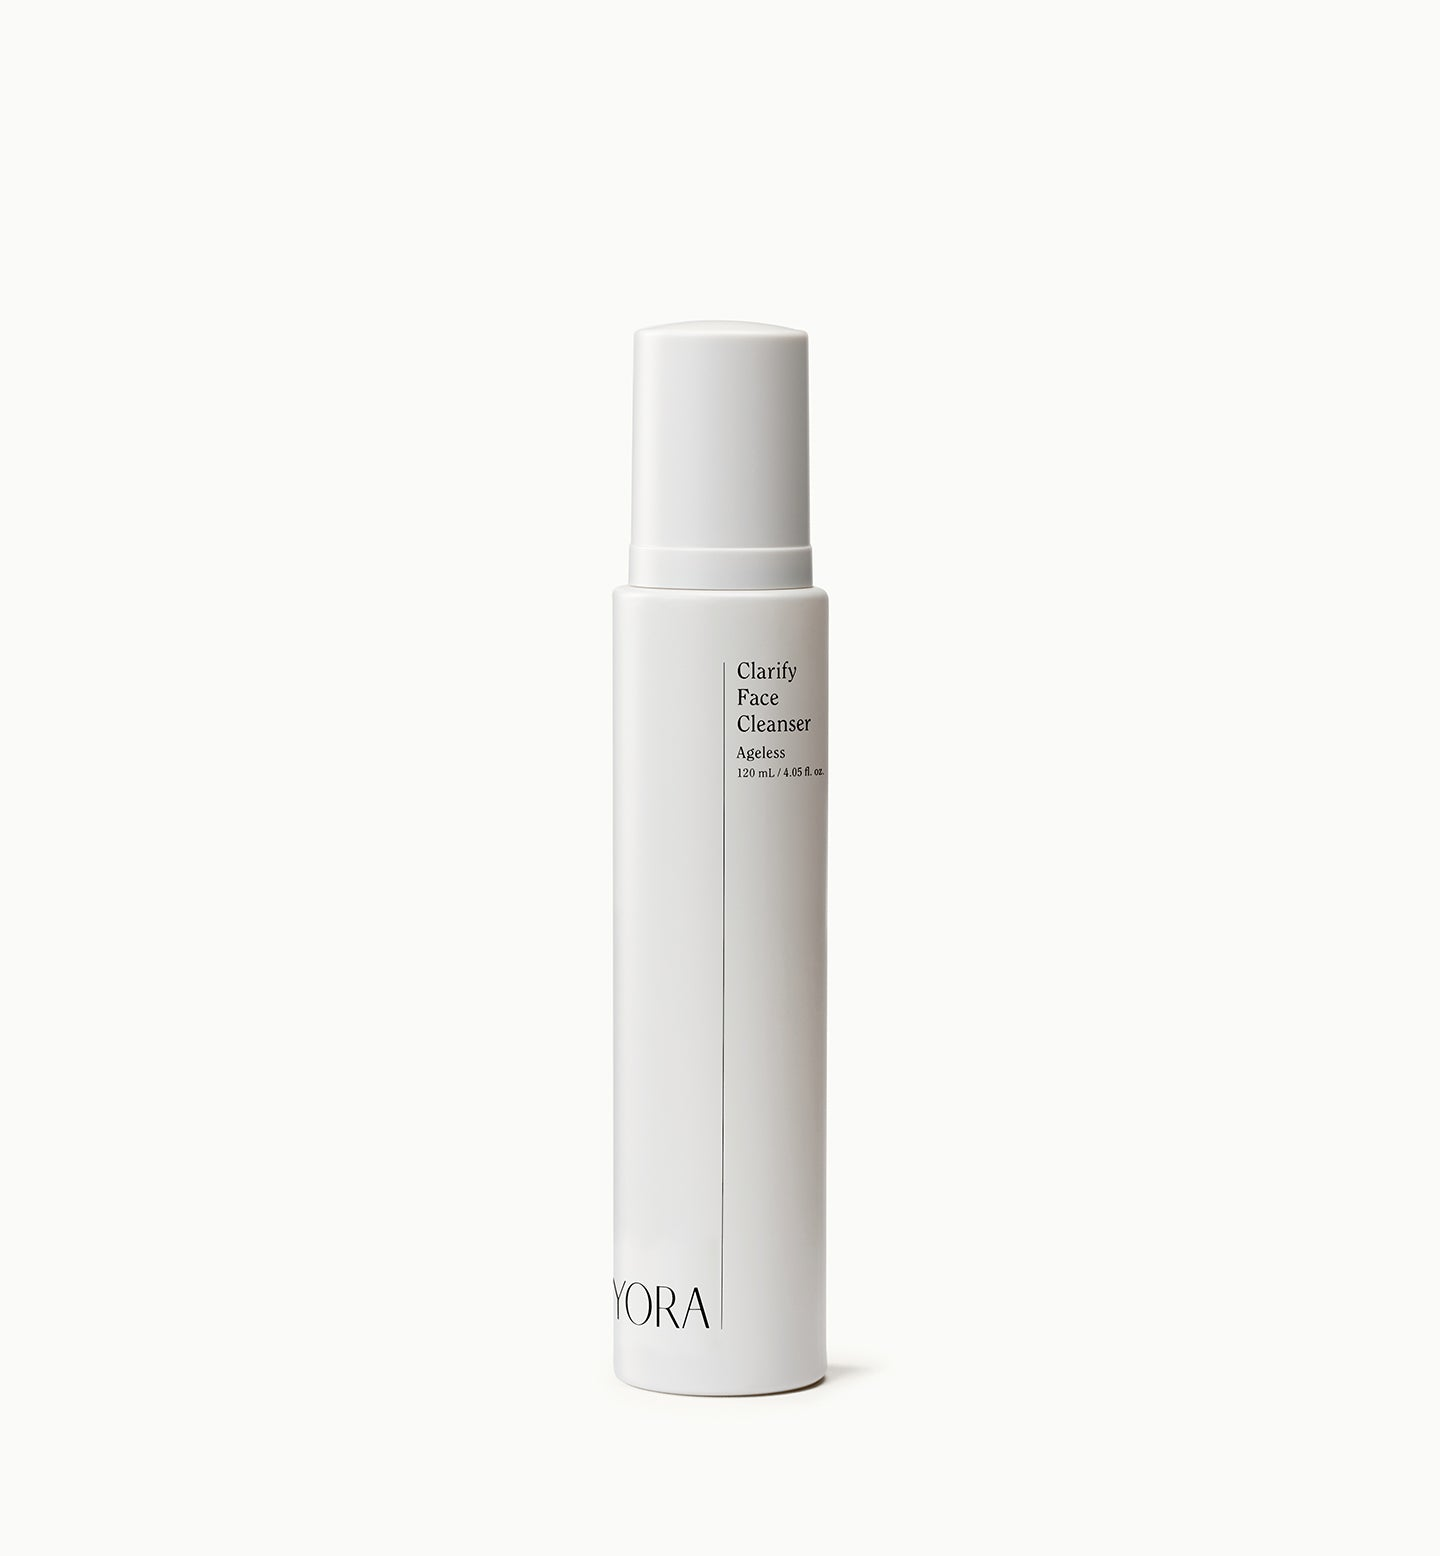 Clarify Face Cleanser - Front